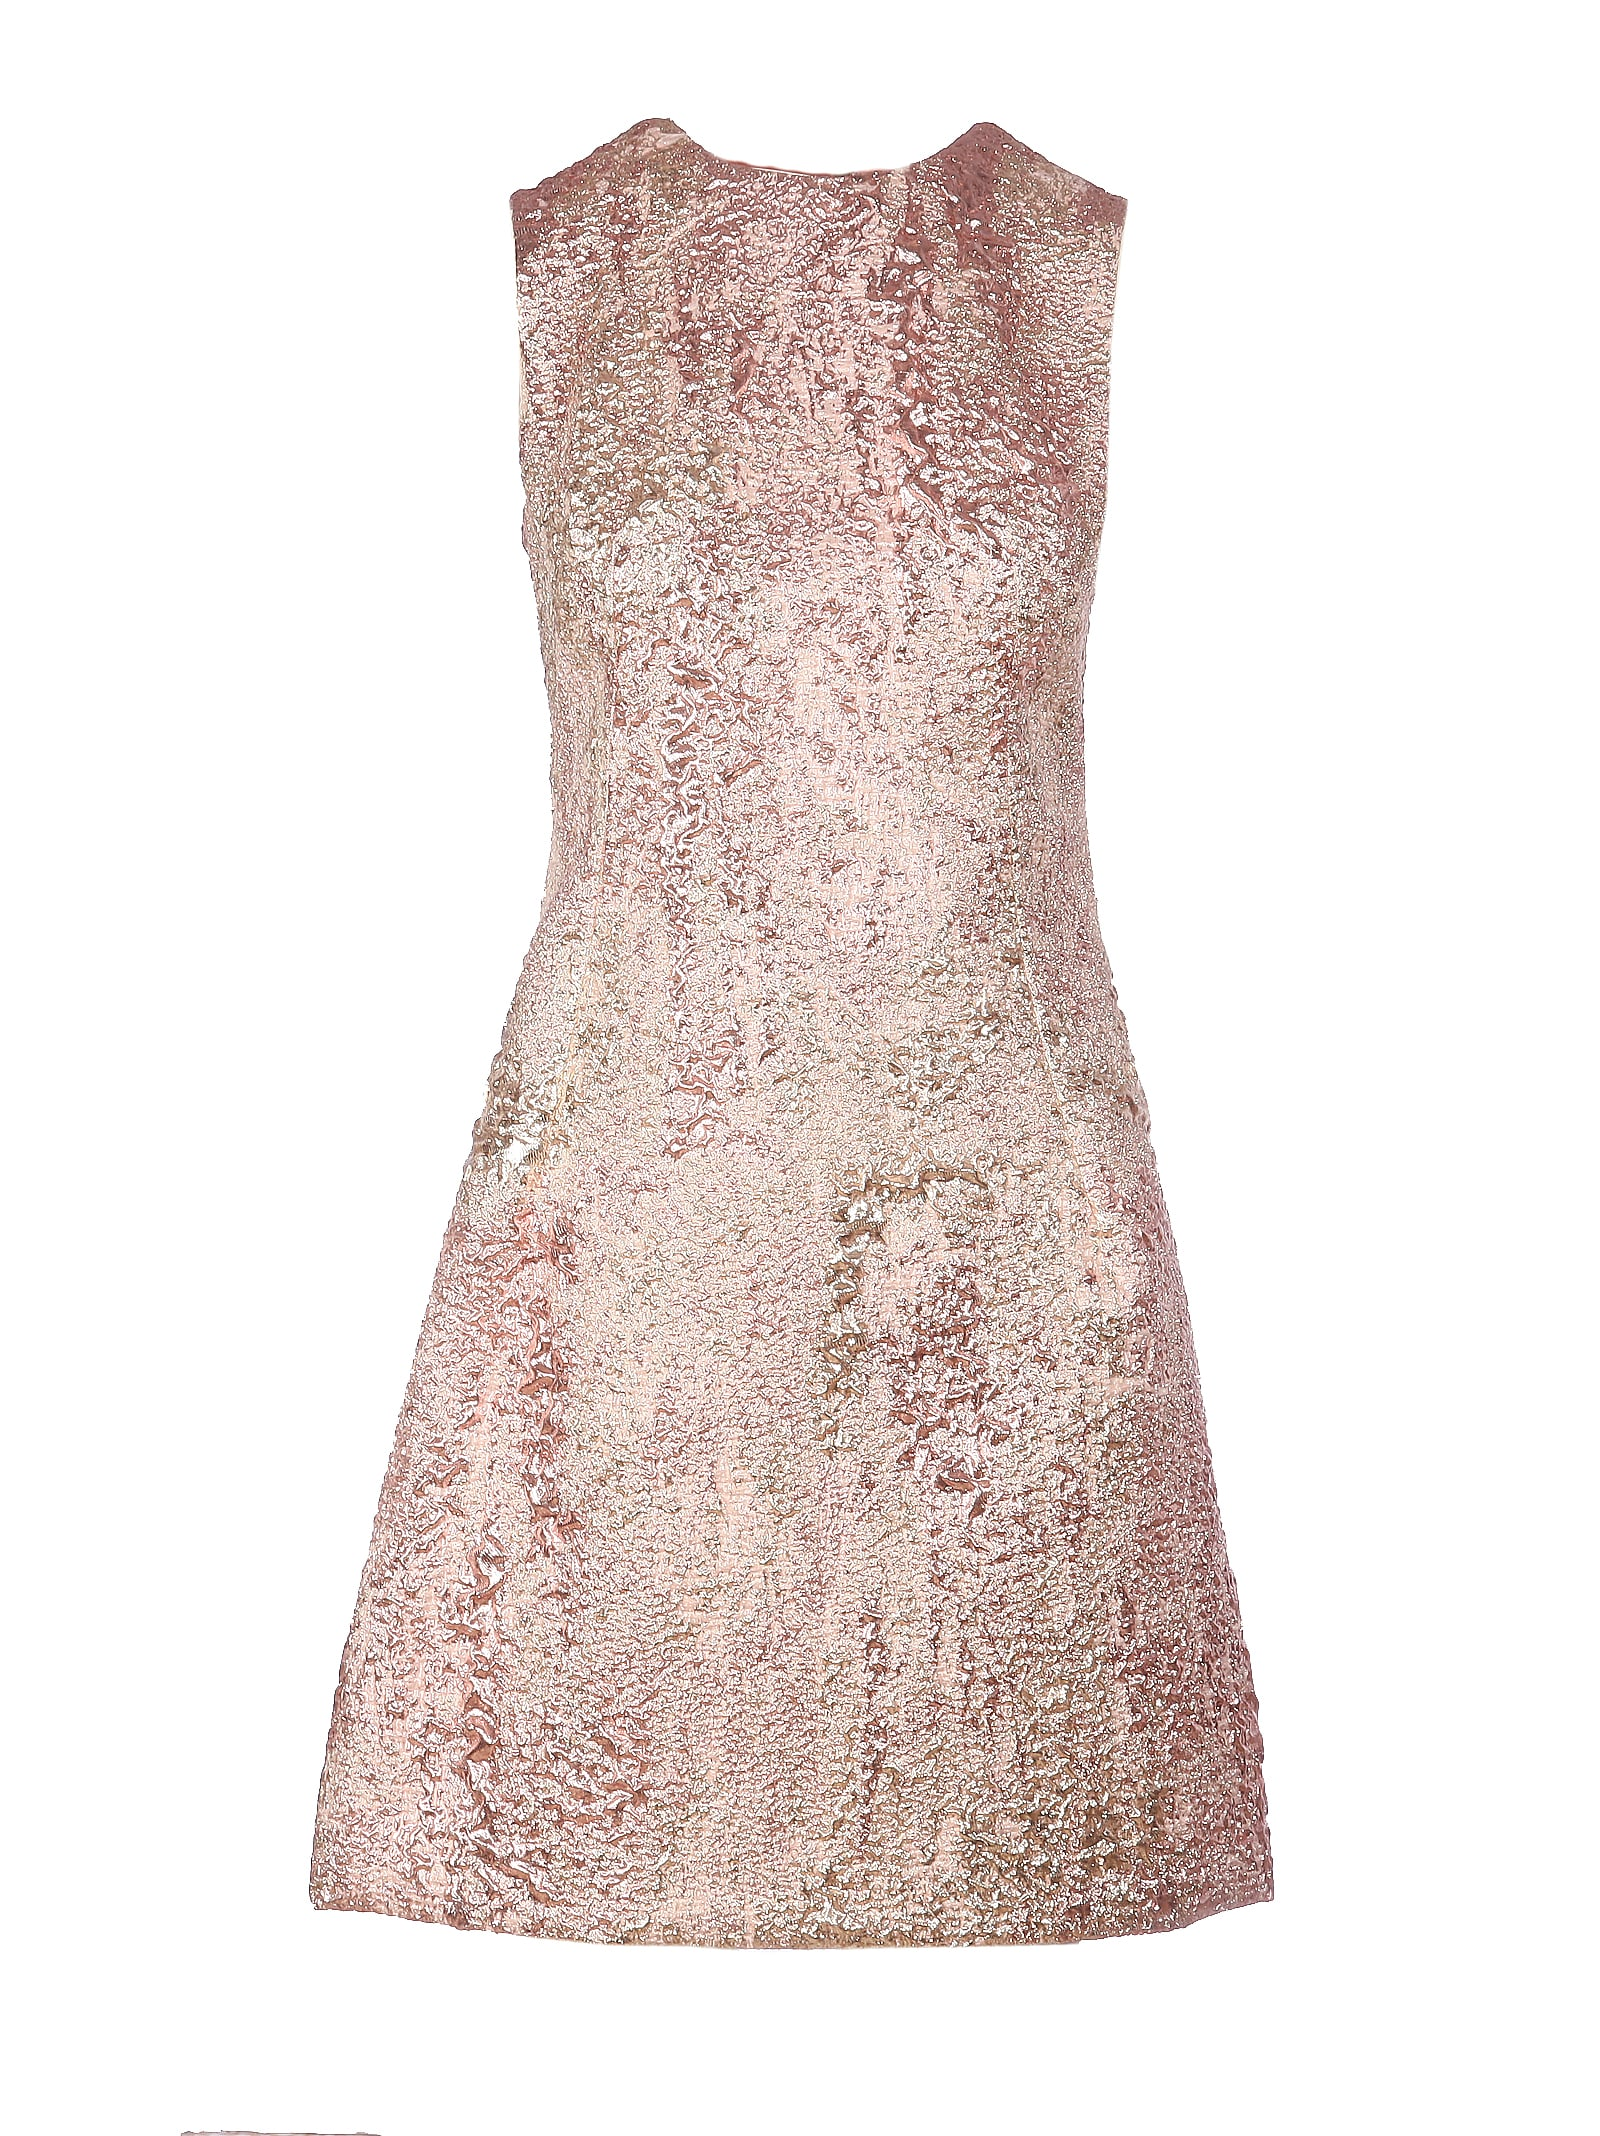 Dolce & Gabbana Jacquard Mini Dress